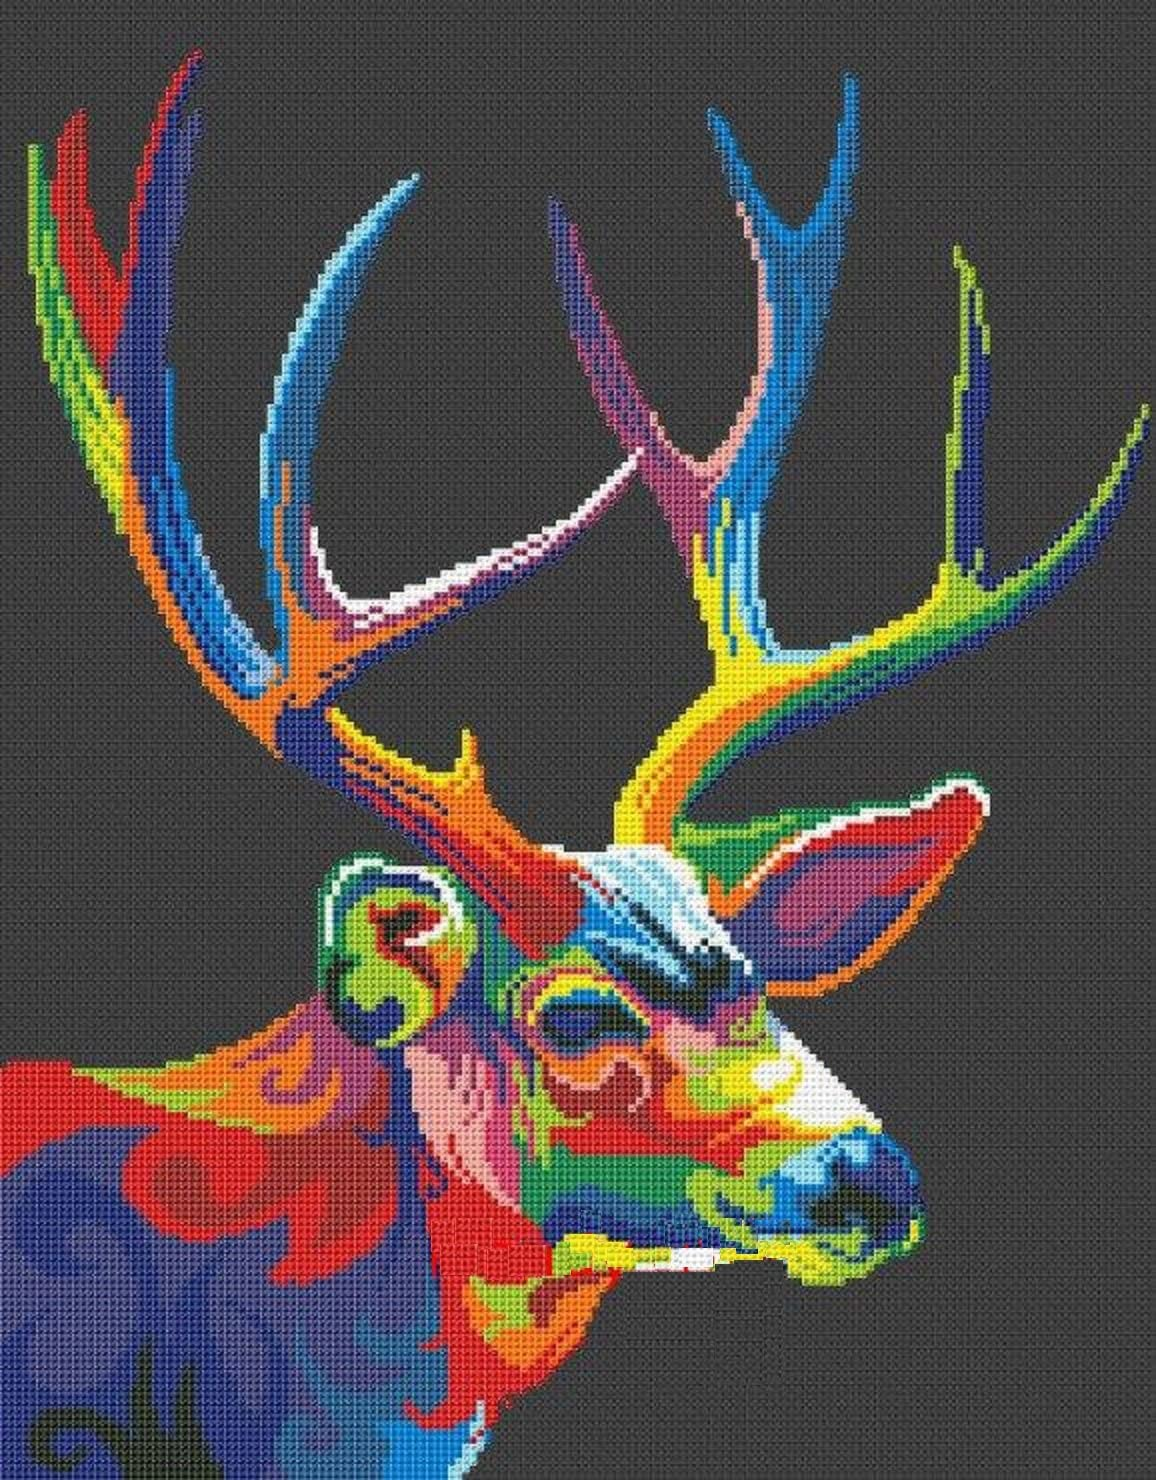 Colorful Deer Counted Cross Stitch Kit,14ct 42x49 cm Counted Deer Cross Stitch Kits